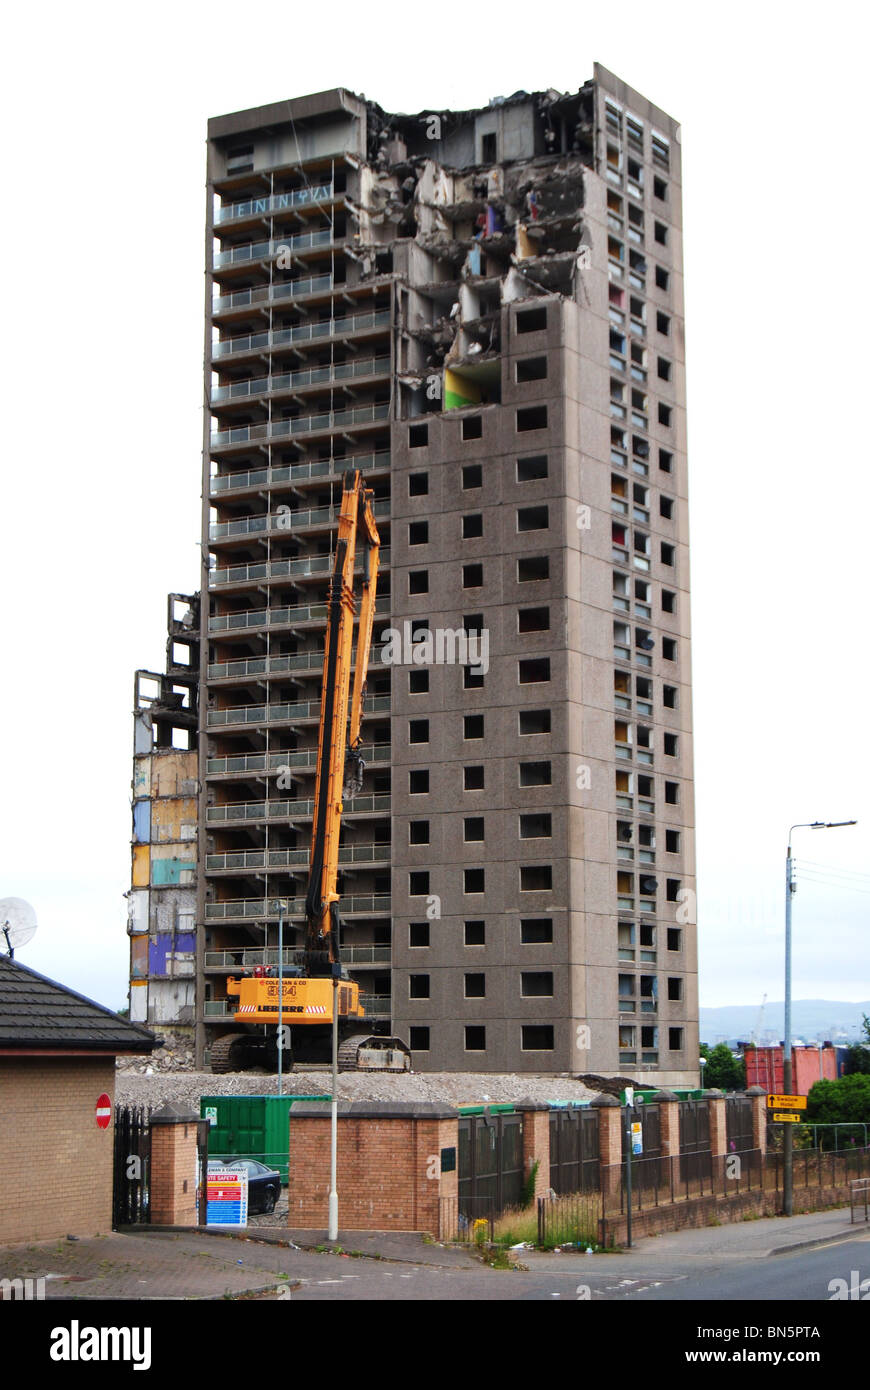 High Rise Demolition : Demolition of high rise flats broomloan court ibrox